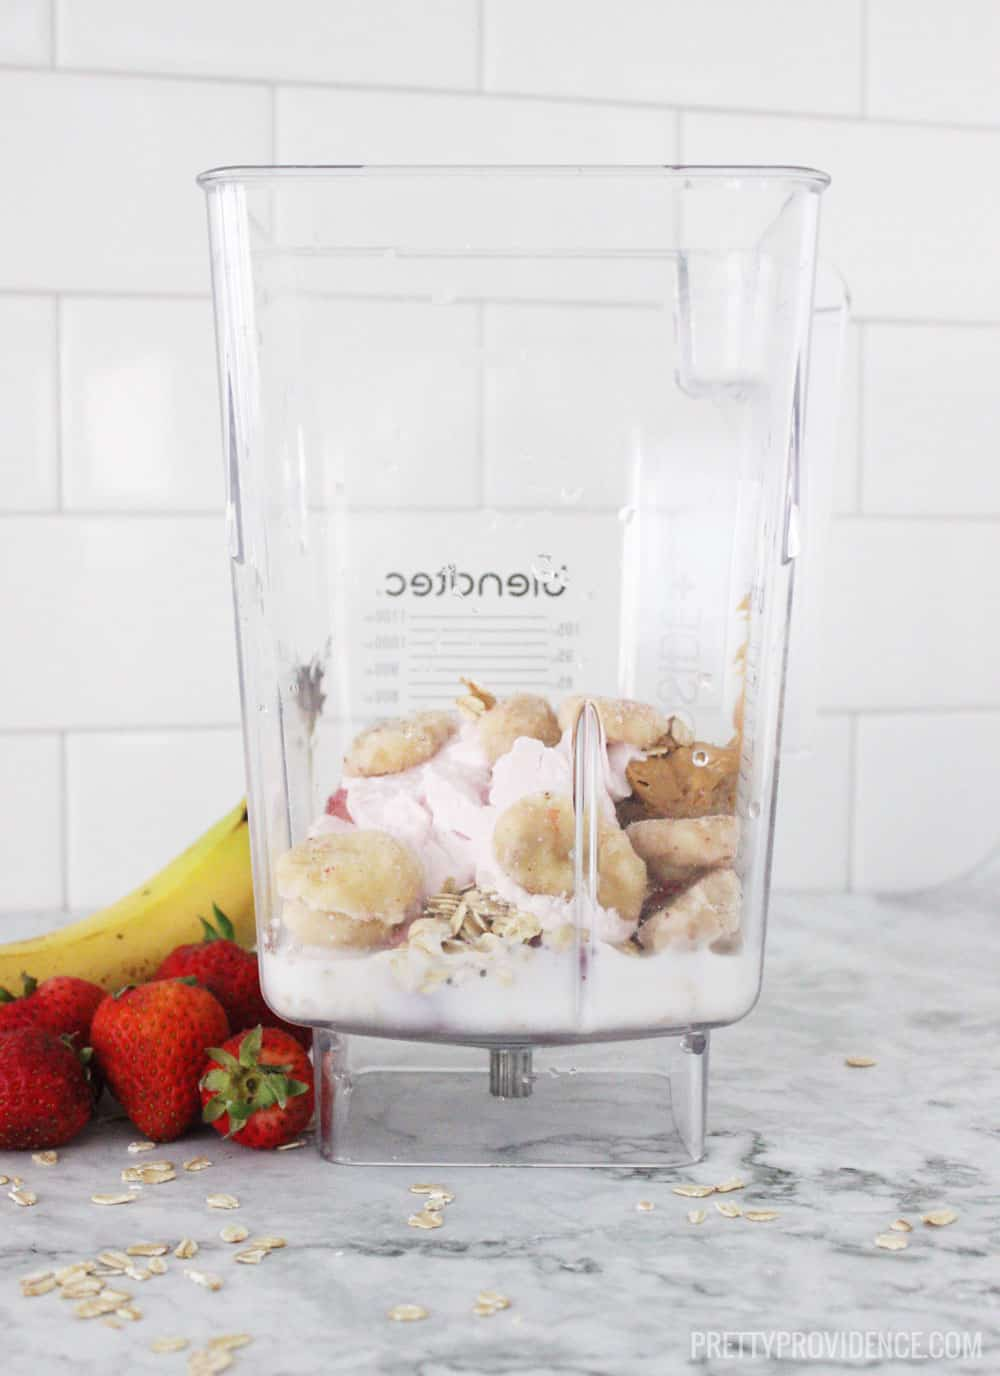 smoothie ingredients in blendtec on granite counter next to strawberries